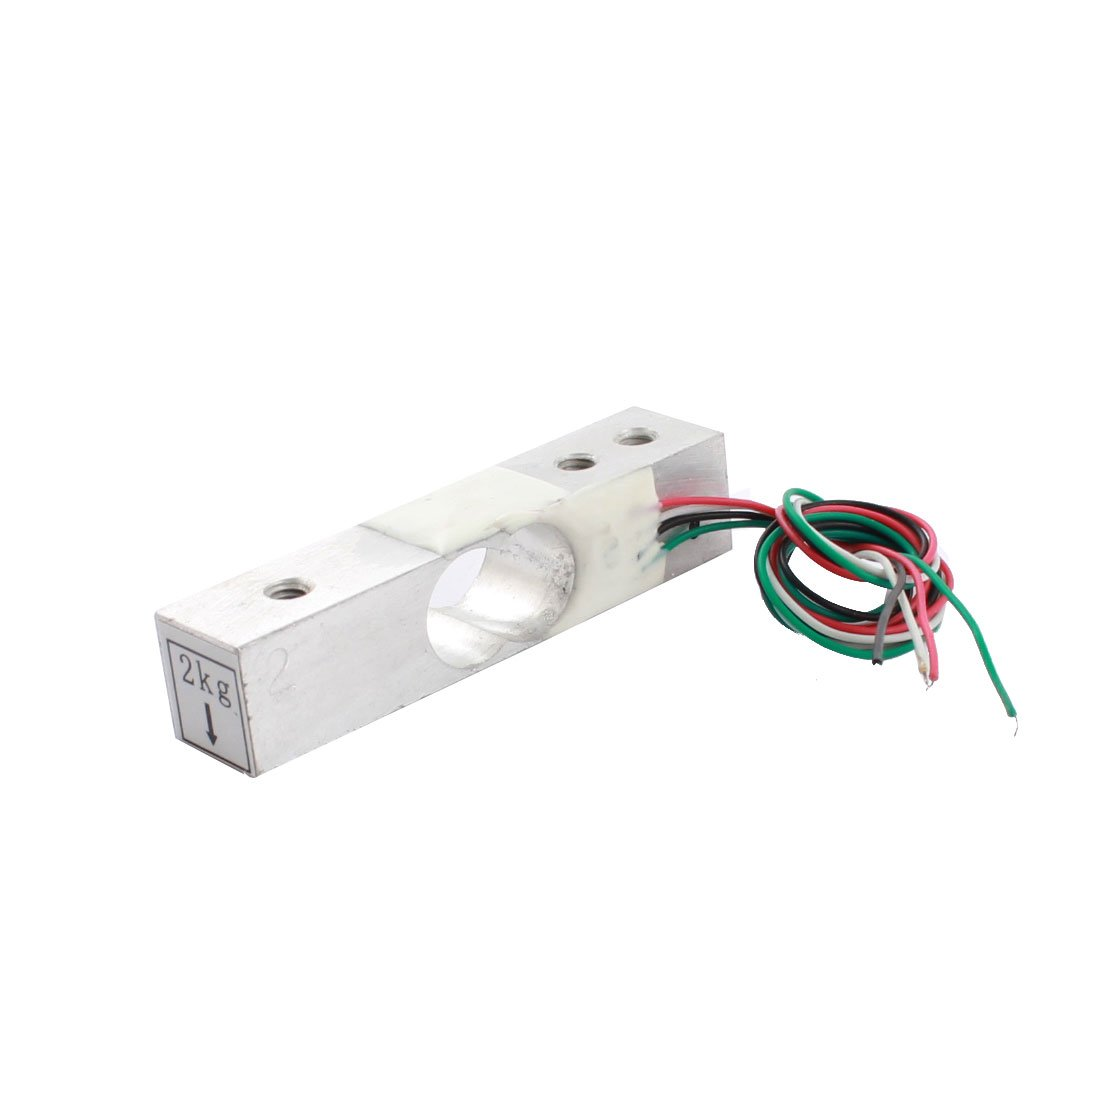 Aexit 2Kg 3mm 3-Hole Aluminium Alloy Portable Electronic Scale Load Cell